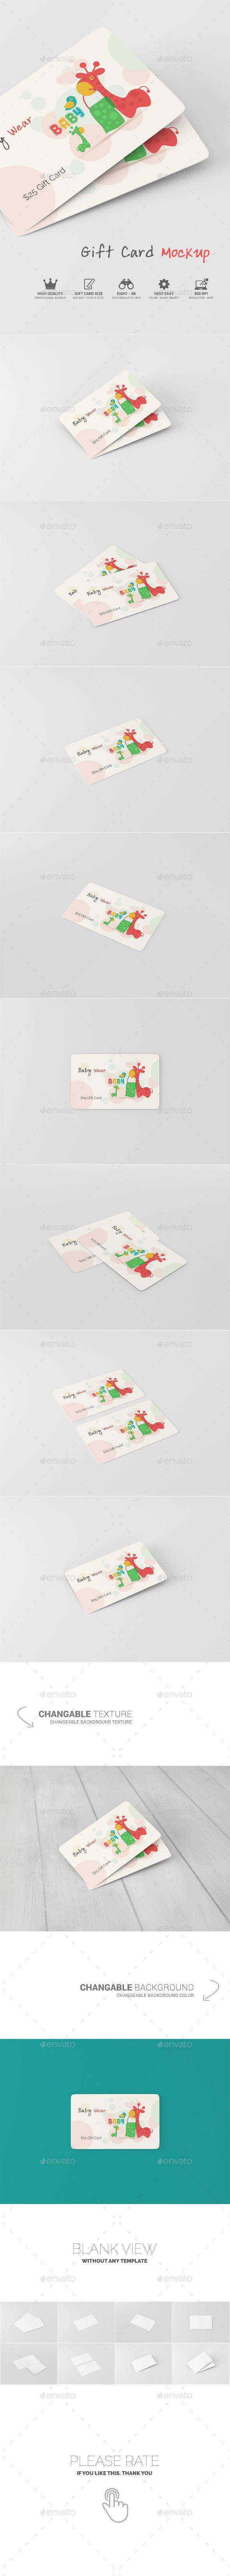 Gift Card Mockup. Download here: http://graphicriver.net/item/gift ...